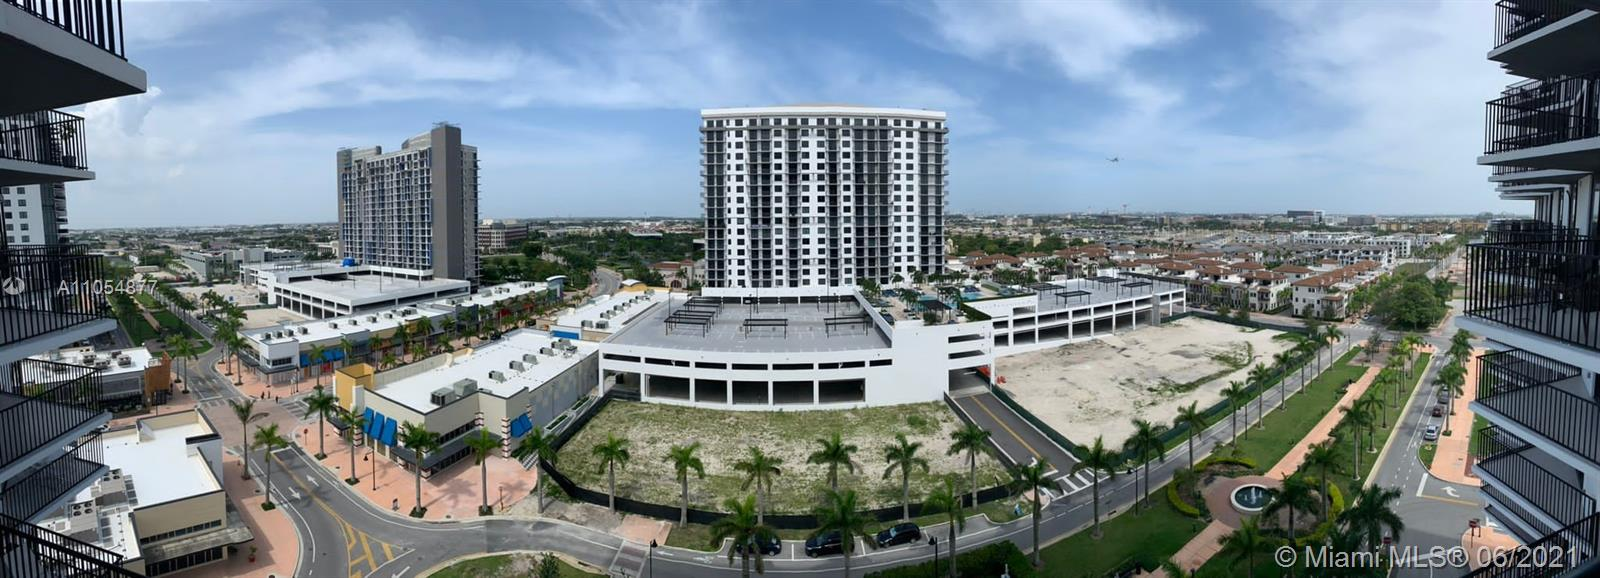 5252 Paseo #1009 - 5252 NW 85th Ave #1009, Doral, FL 33166